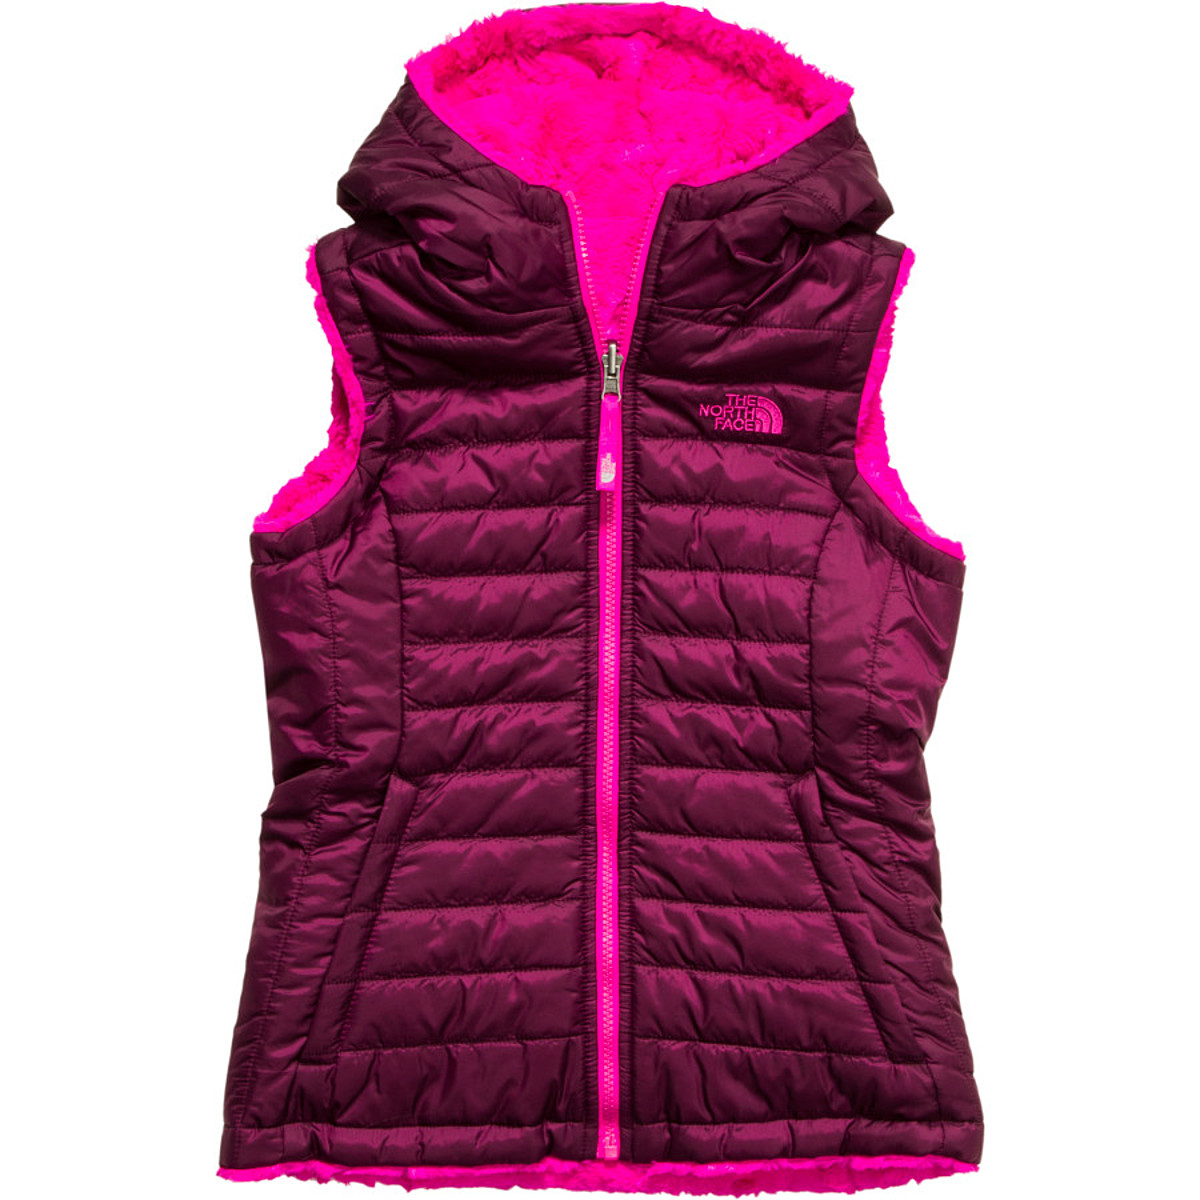 The North Face Mossbud Swirl Vest